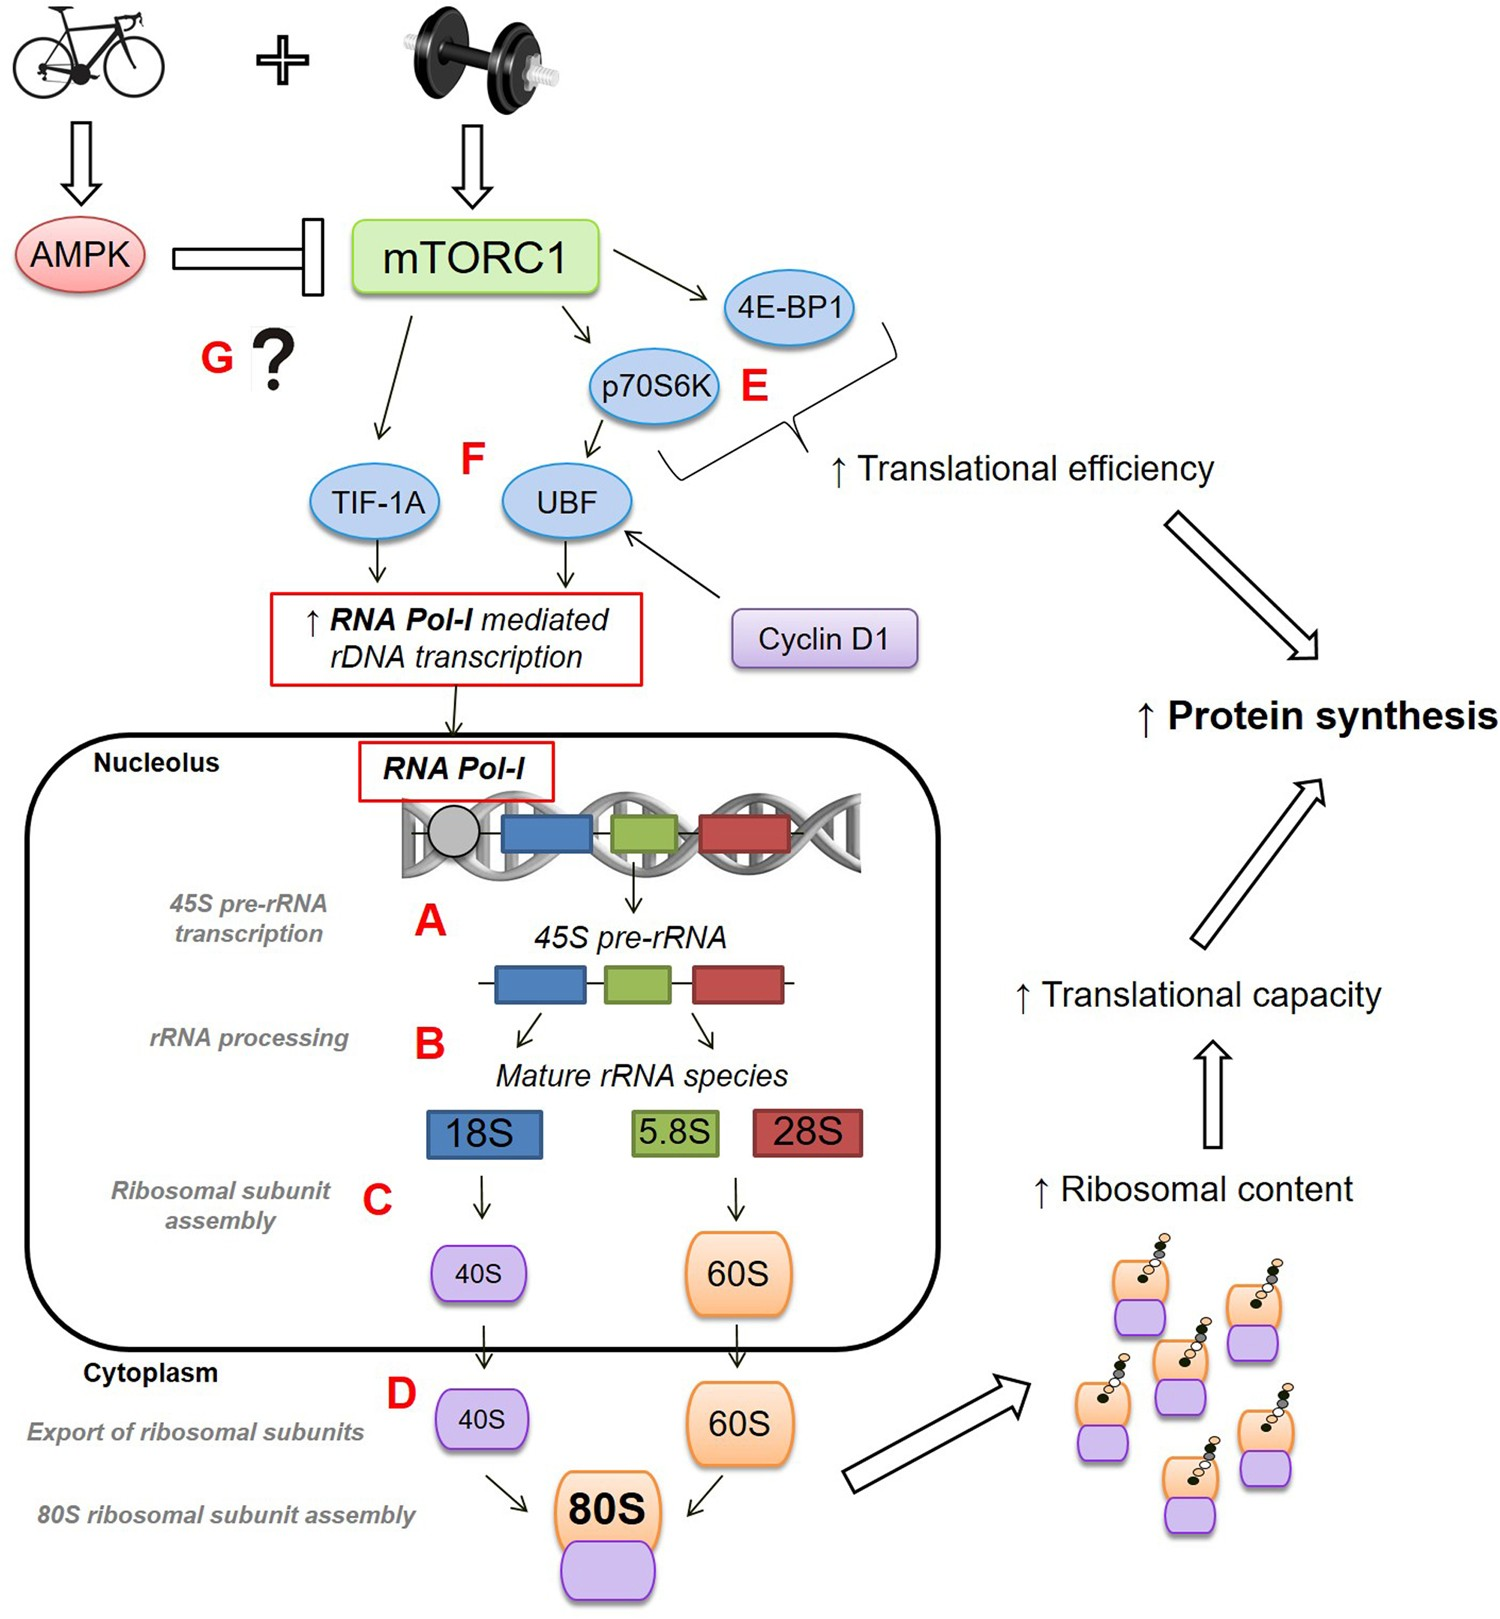 Enhanced Skeletal Muscle Ribosome Biogenesis Yet Attenuated Mtorc1 Lt Pro Dual Function Dark 02r 14 Gr And Related Signalling Following Short Term Concurrent Versus